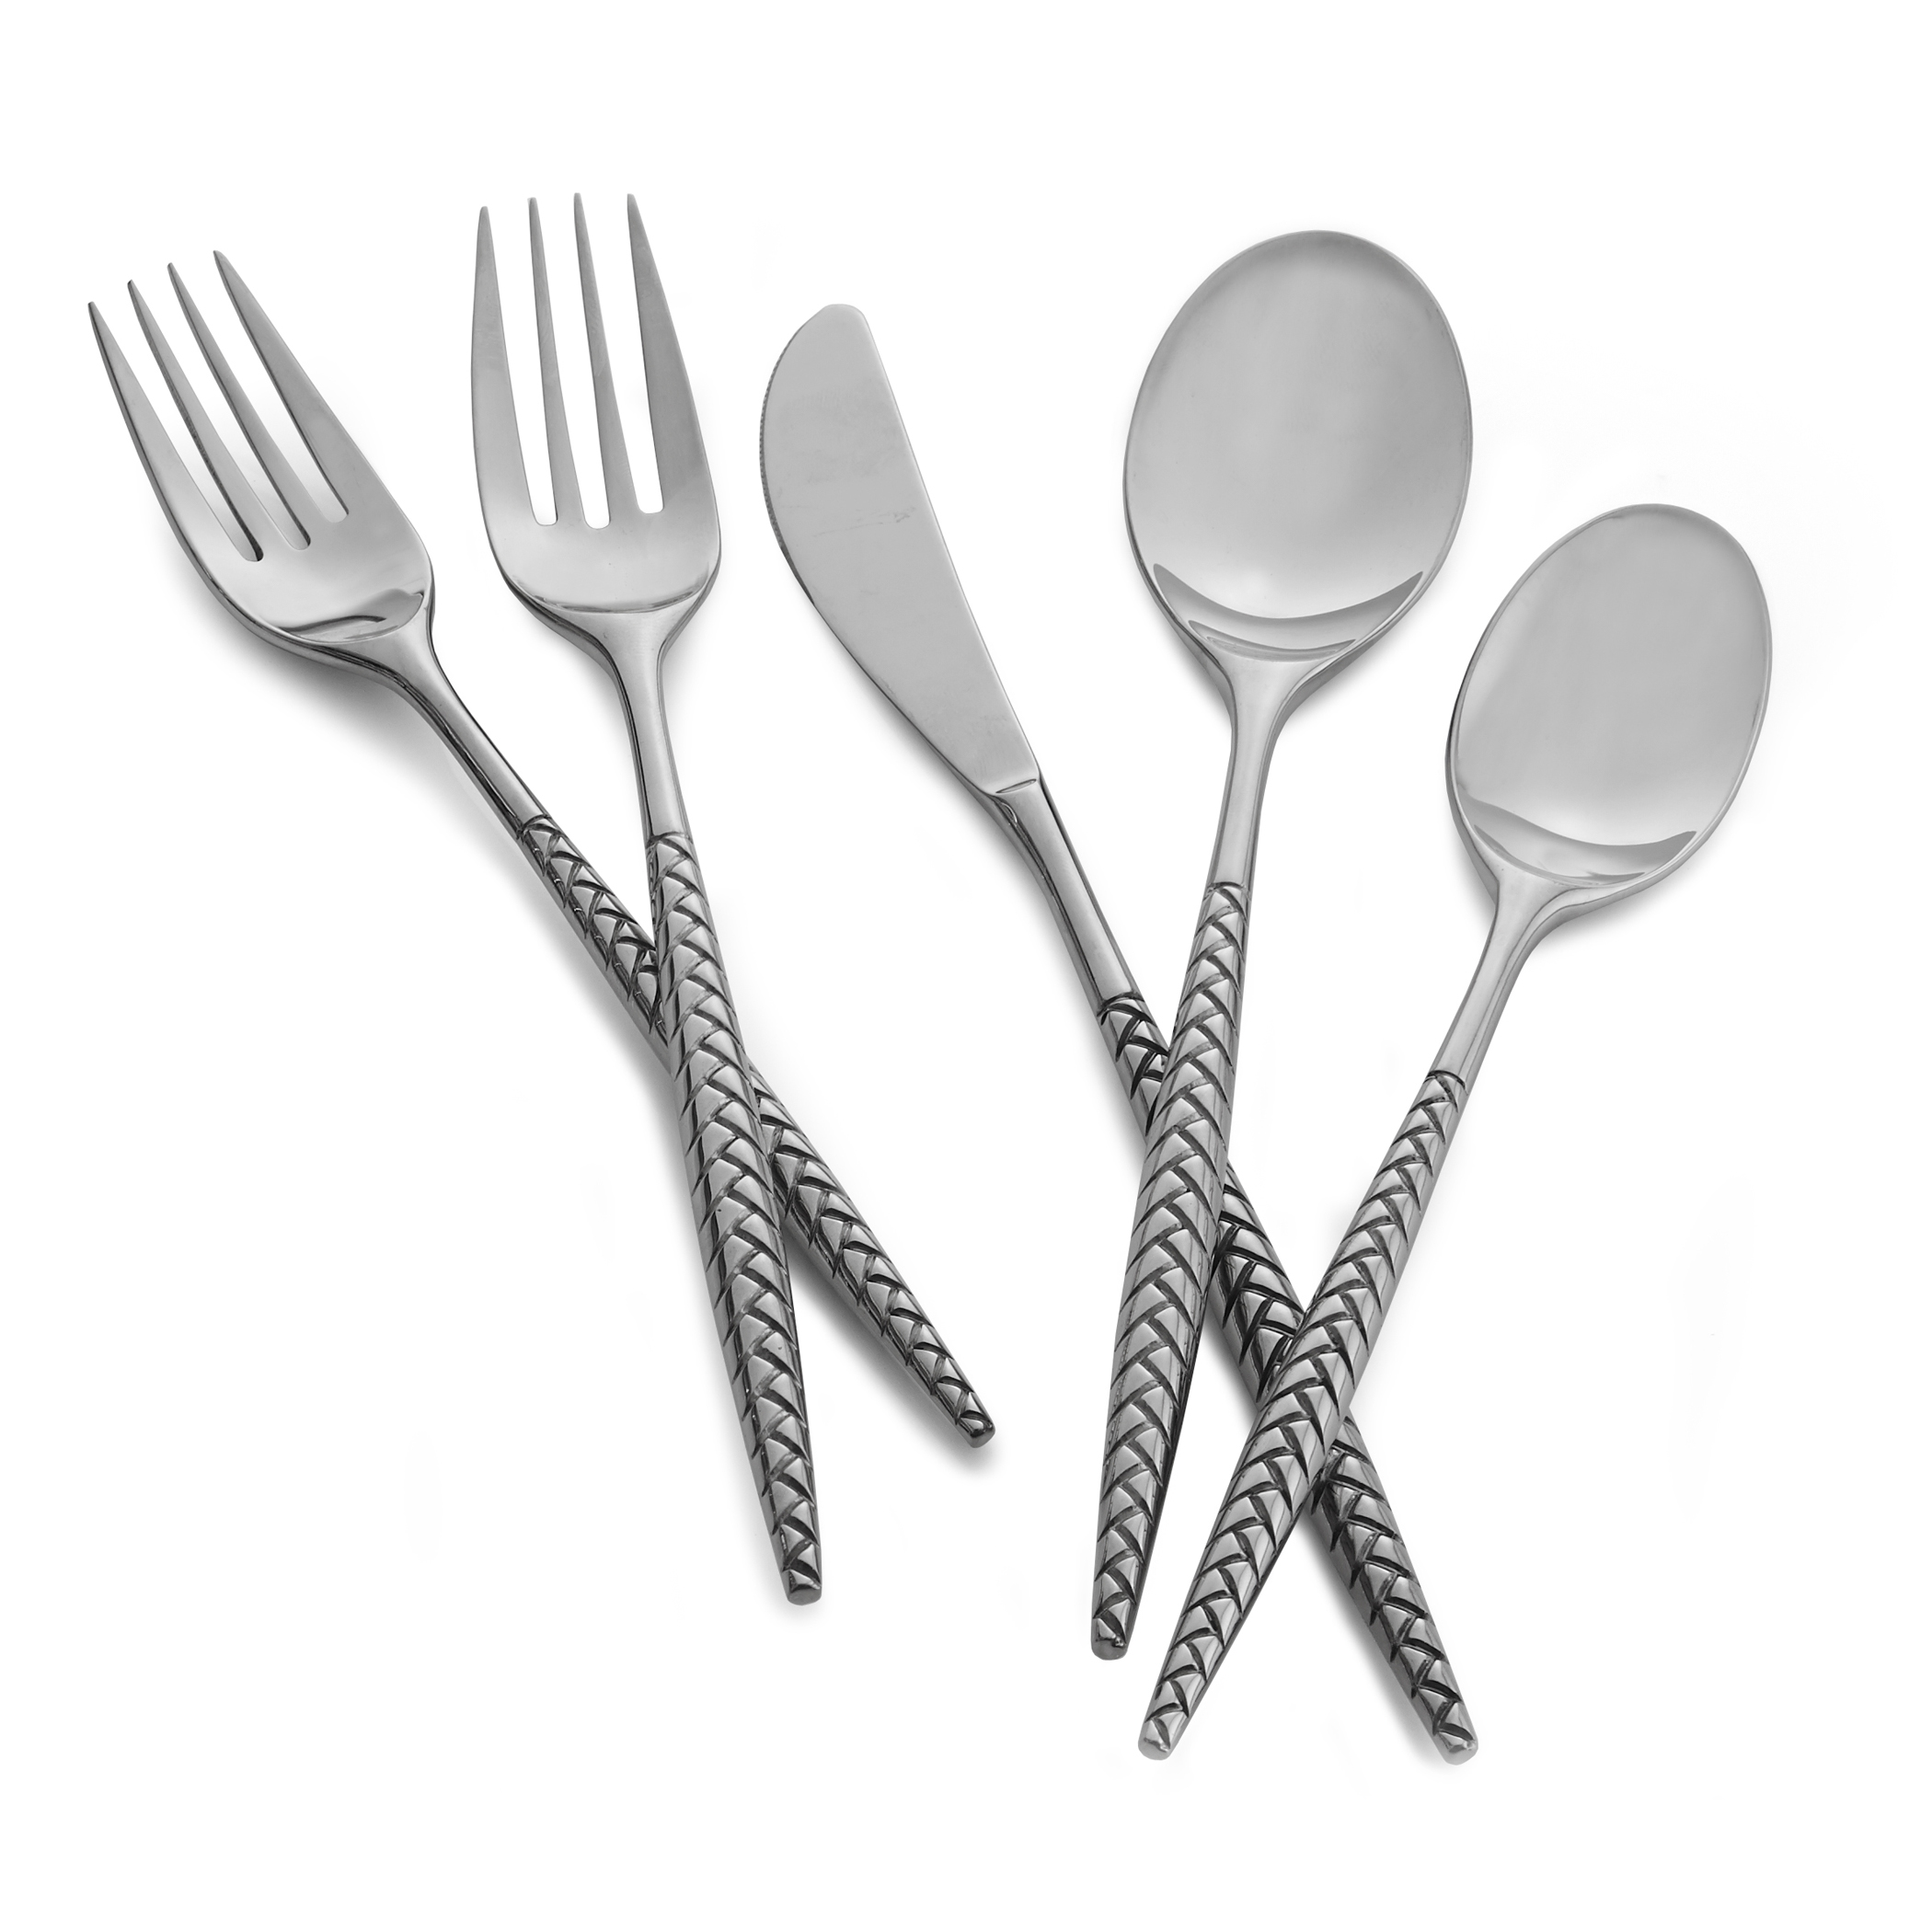 Braid Flatware